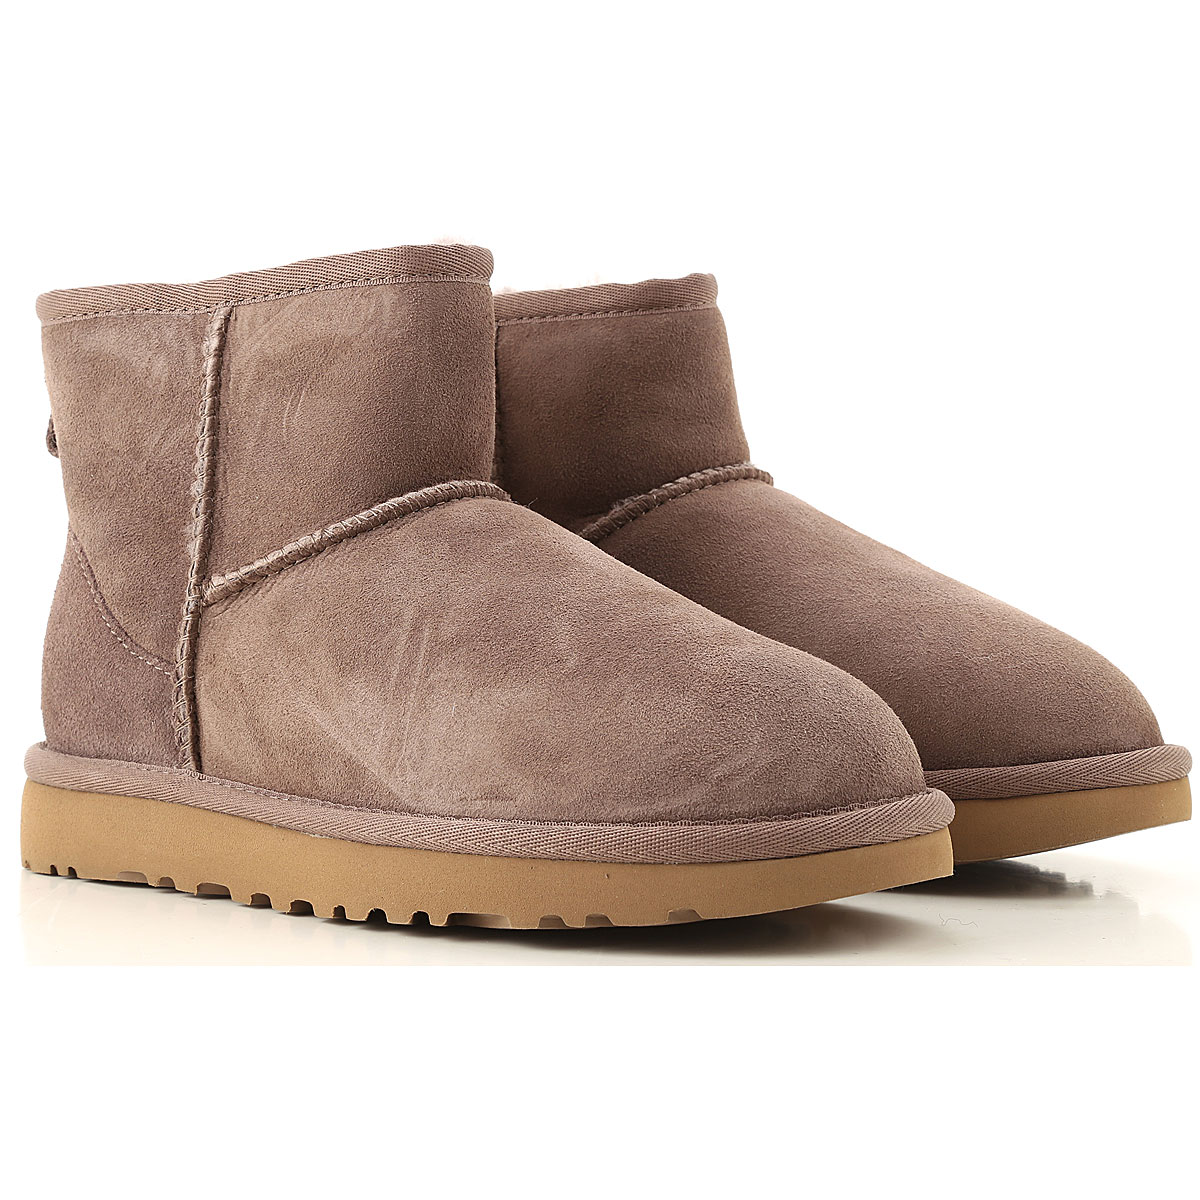 UGG Boots for Women, Booties On Sale, Mole, Suede leather, 2019, USA 5 UK 3 5 EU 36 JAPAN 220 USA 6 UK 4 5 EU 37 JAPAN 230 USA 7 UK 5 5 EU 38